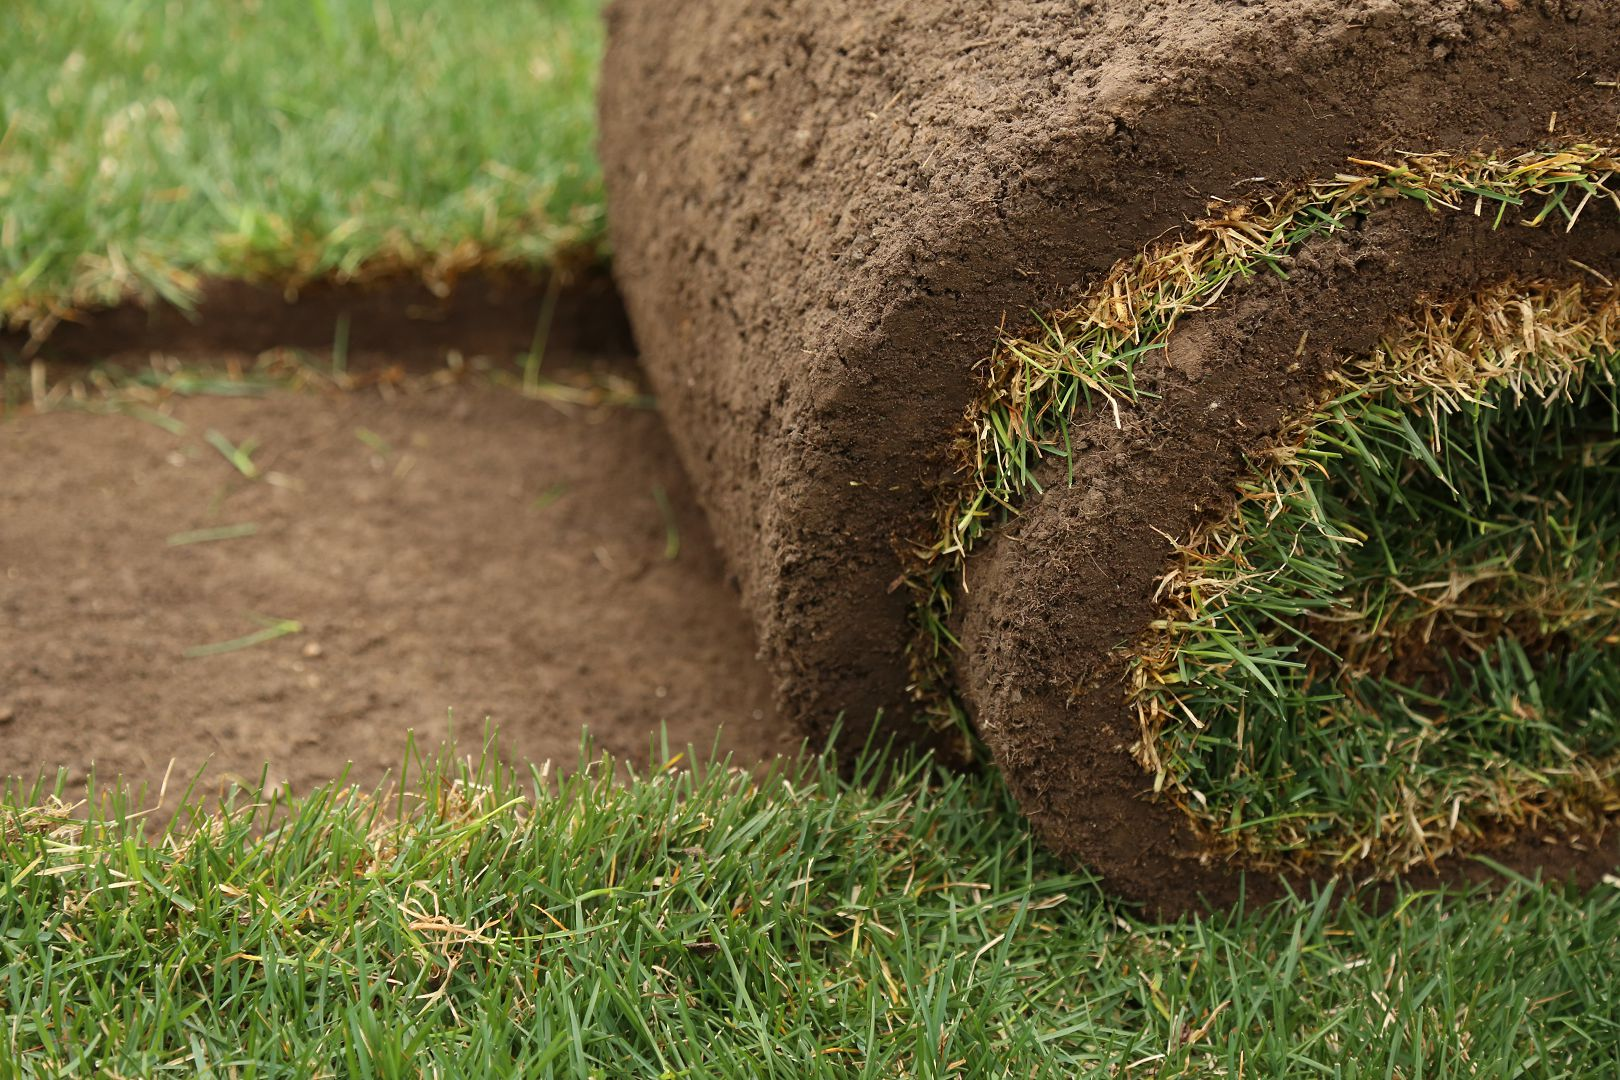 Sod rolled up closeup